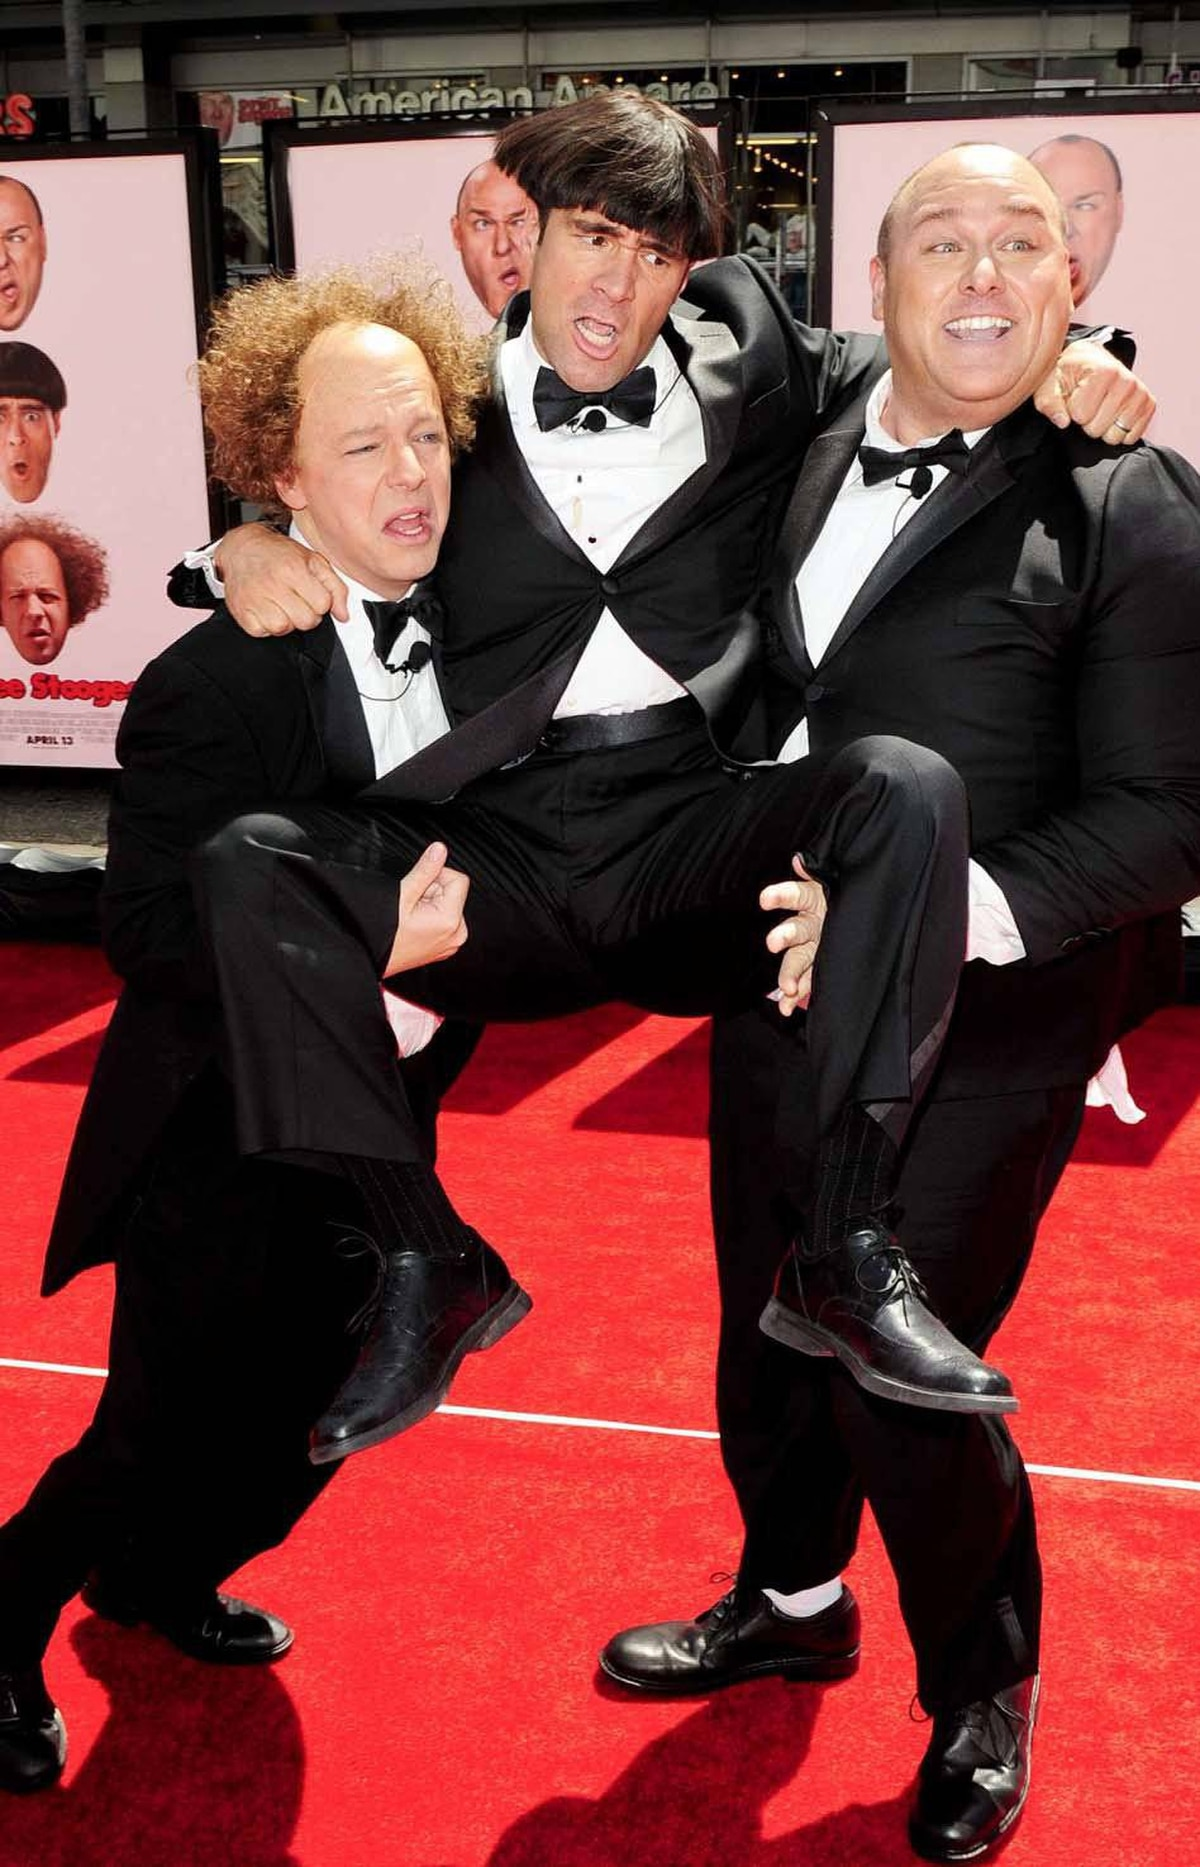 """Meanwhile, Hollywood honoured the sacrifice of the Lamb of God by resurrecting the Three Stooges franchise. Actors Sean Hayes (Larry), Chris Diamantopoulos (Moe) and Will Sasso (Curly) arrive in character at the Hollywood premiere of """"The Three Stooges: The Movie"""" last week."""